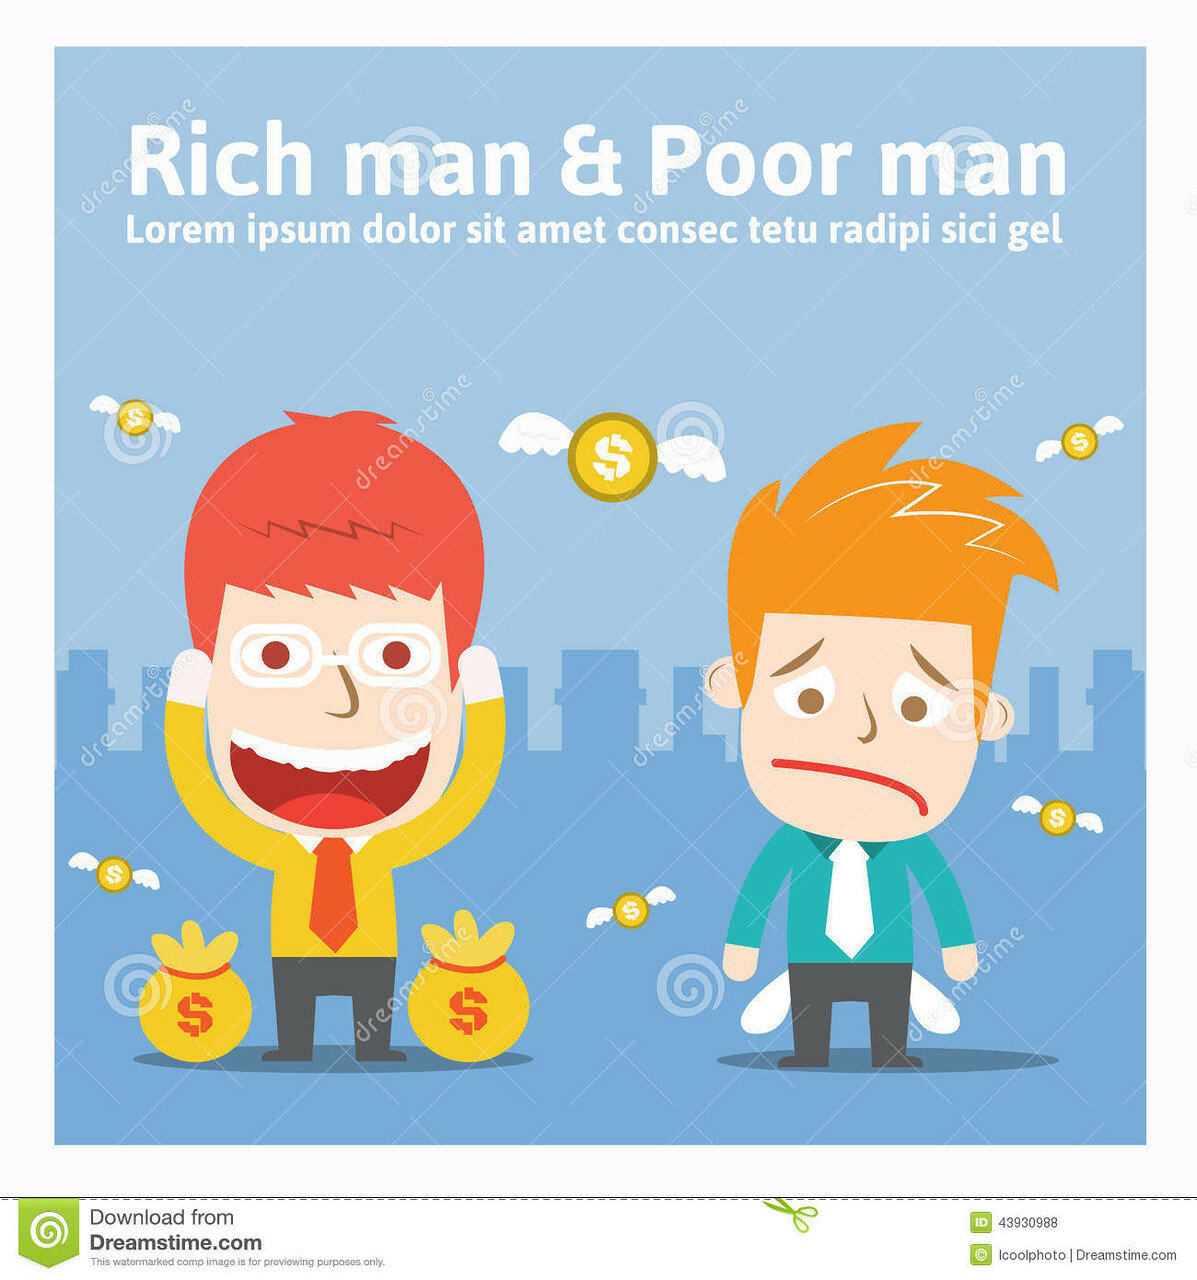 http://www.dreamstime.com/royalty-free-stock-photos-rich-man-poor-man-vector-cartoon-business-image43930988